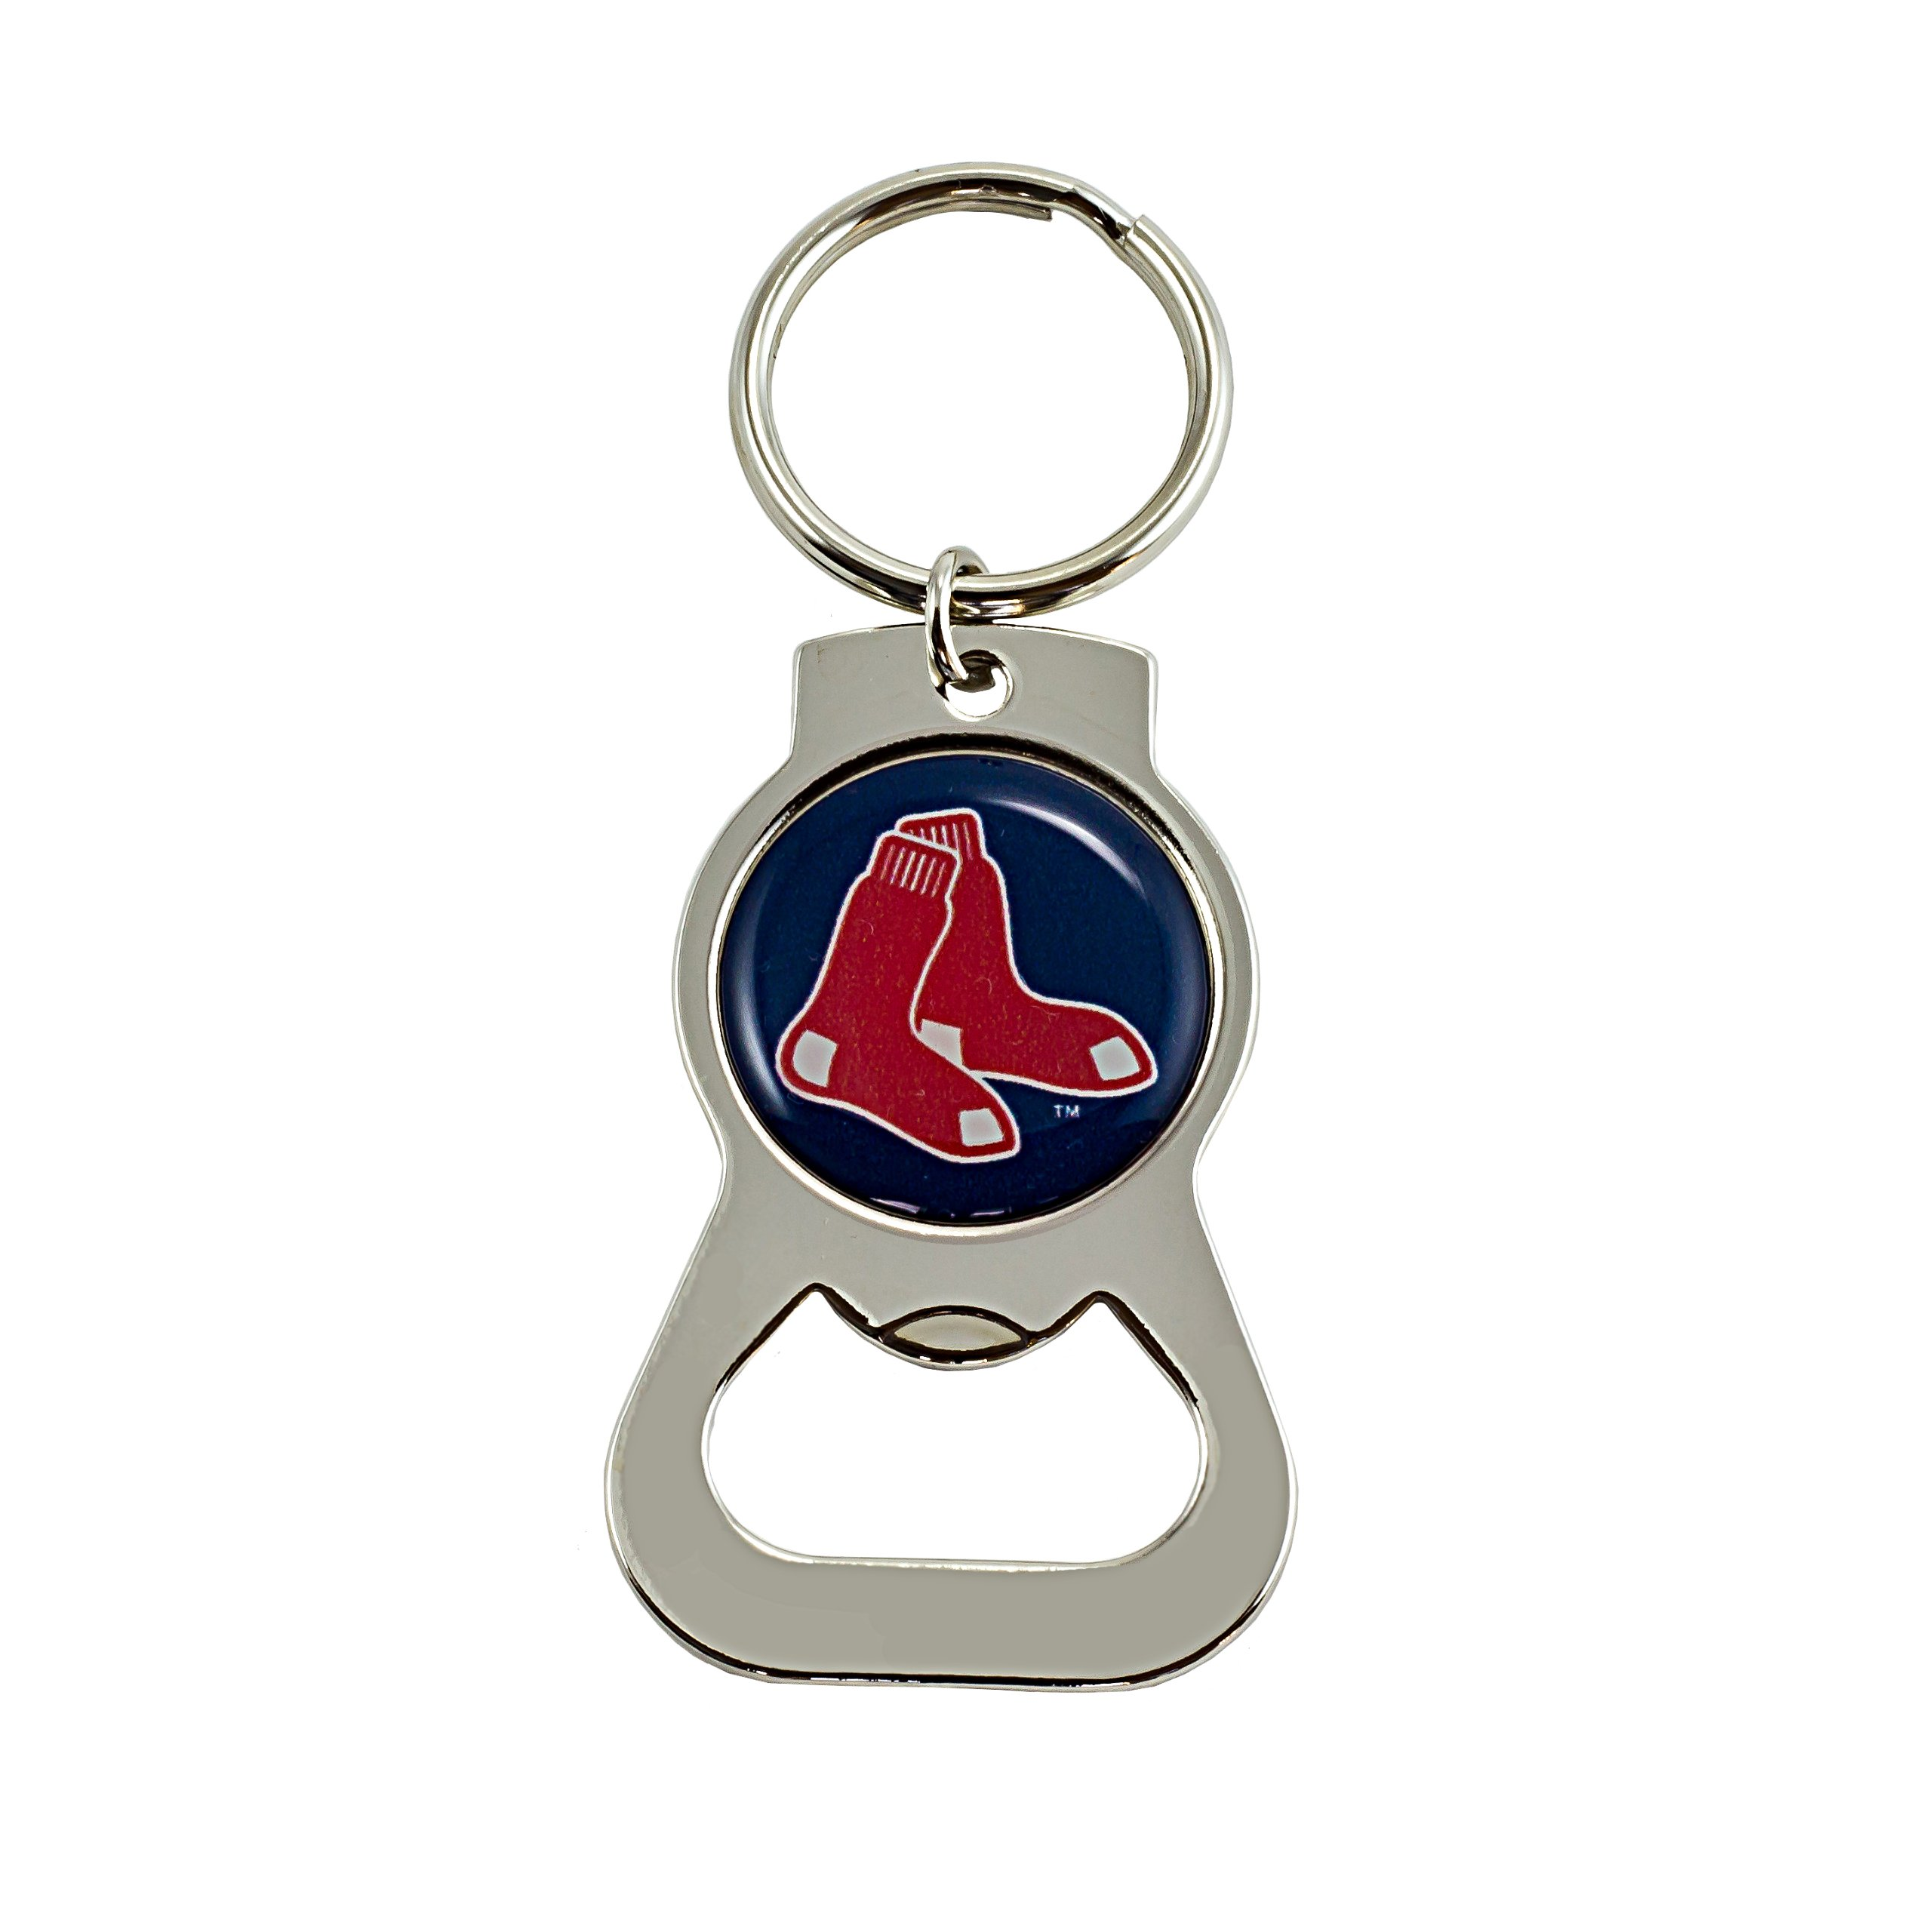 Boston Red Sox Bottle Opener Key Chain